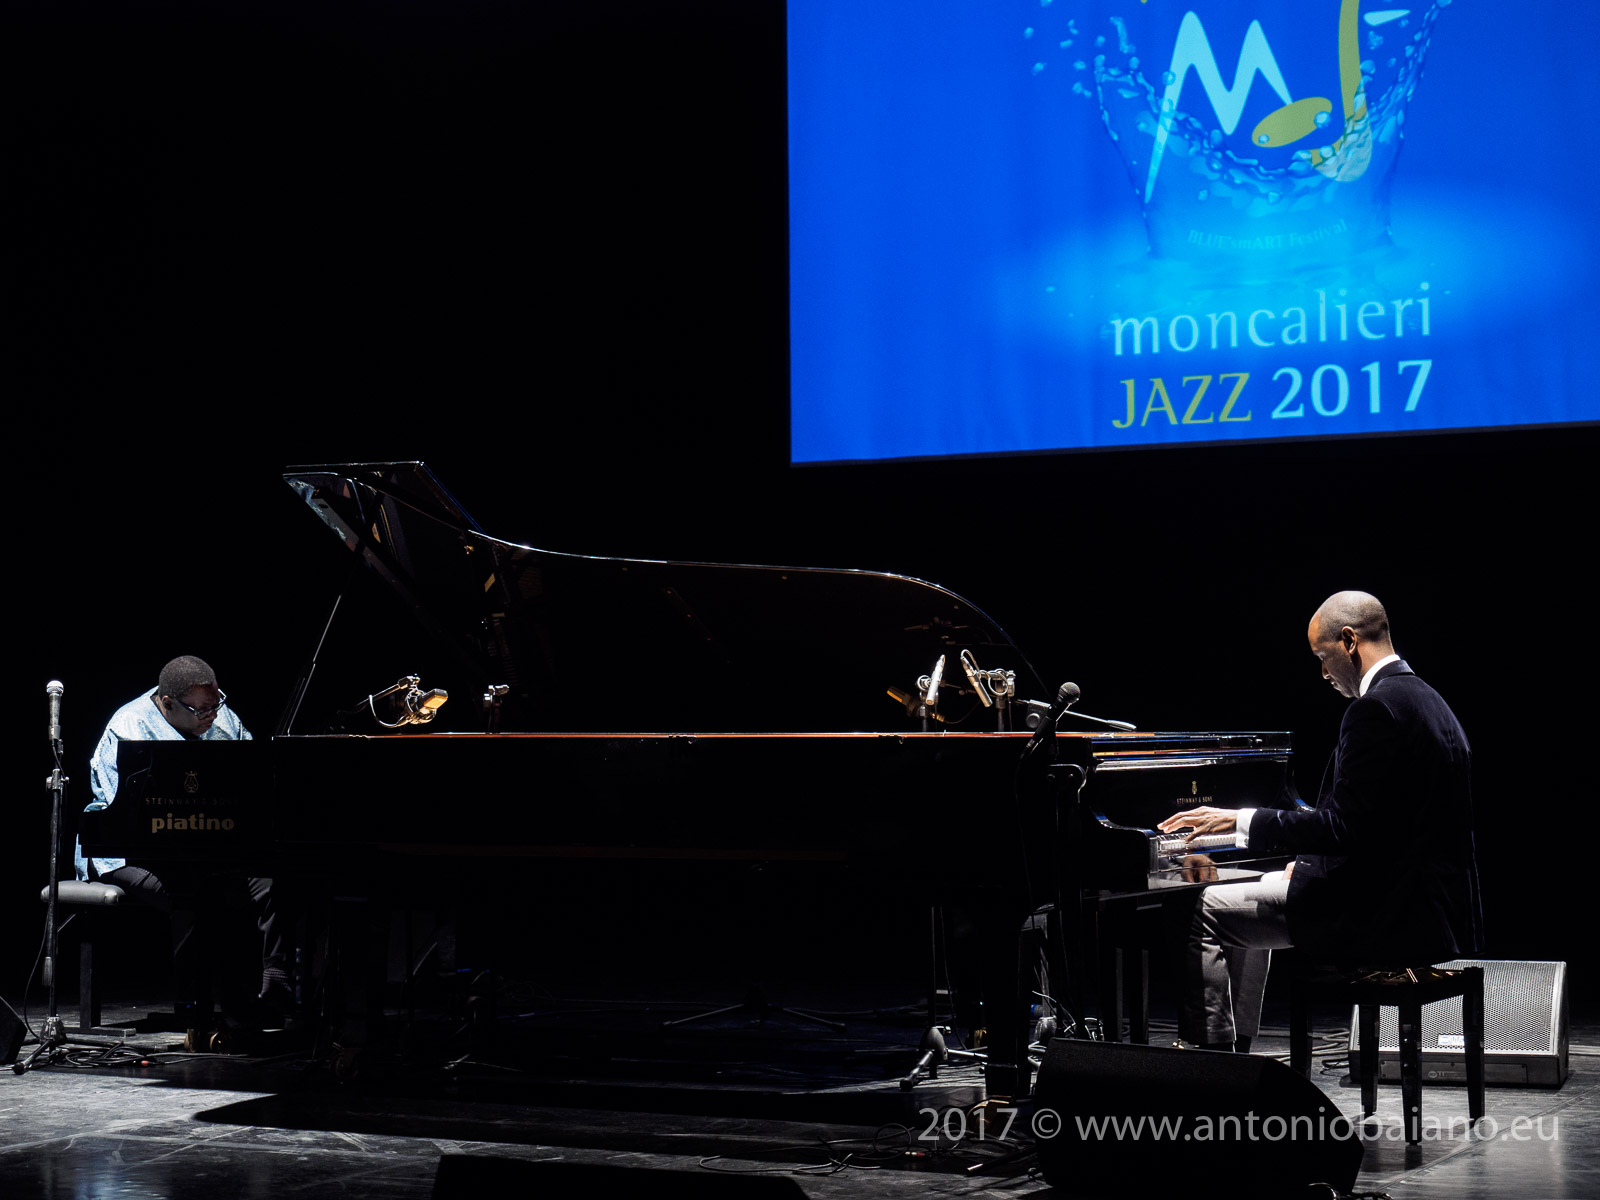 Cyrus Chestnut and Danny Grissett - 4 by Monk by 4, Moncalieri Jazz Festival